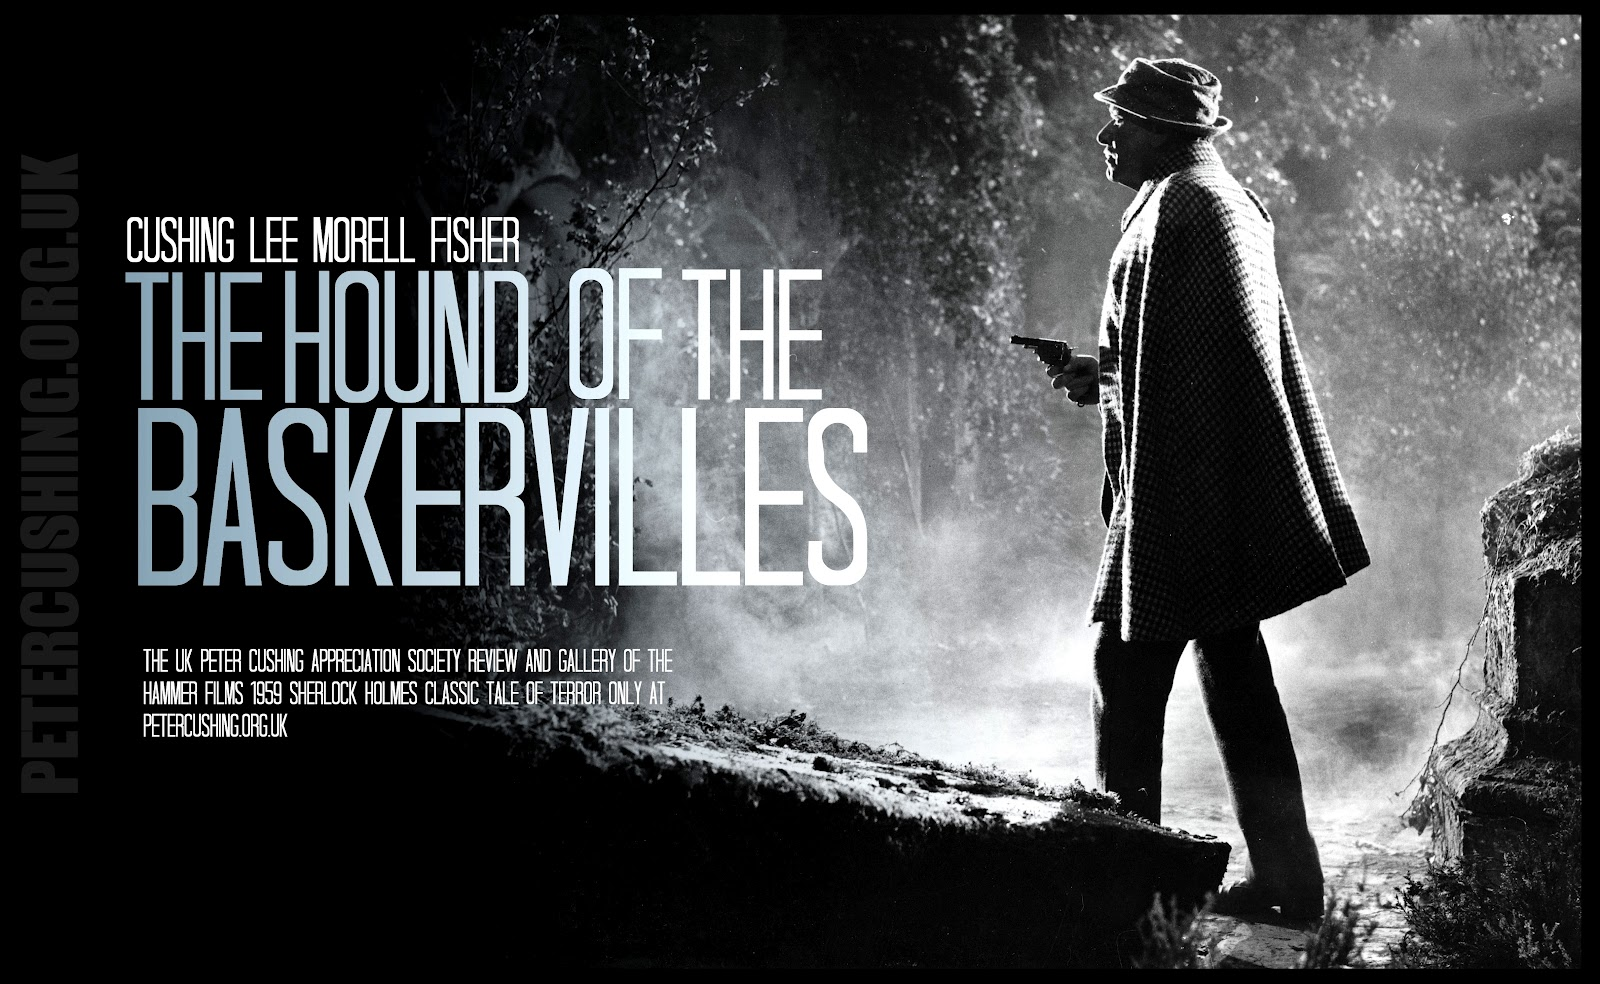 hound of the baskervilles 2 essay Suggested essay topics why does holmes get involved in this case in the first  place how do images of modernity interact with mystical legends of the past.